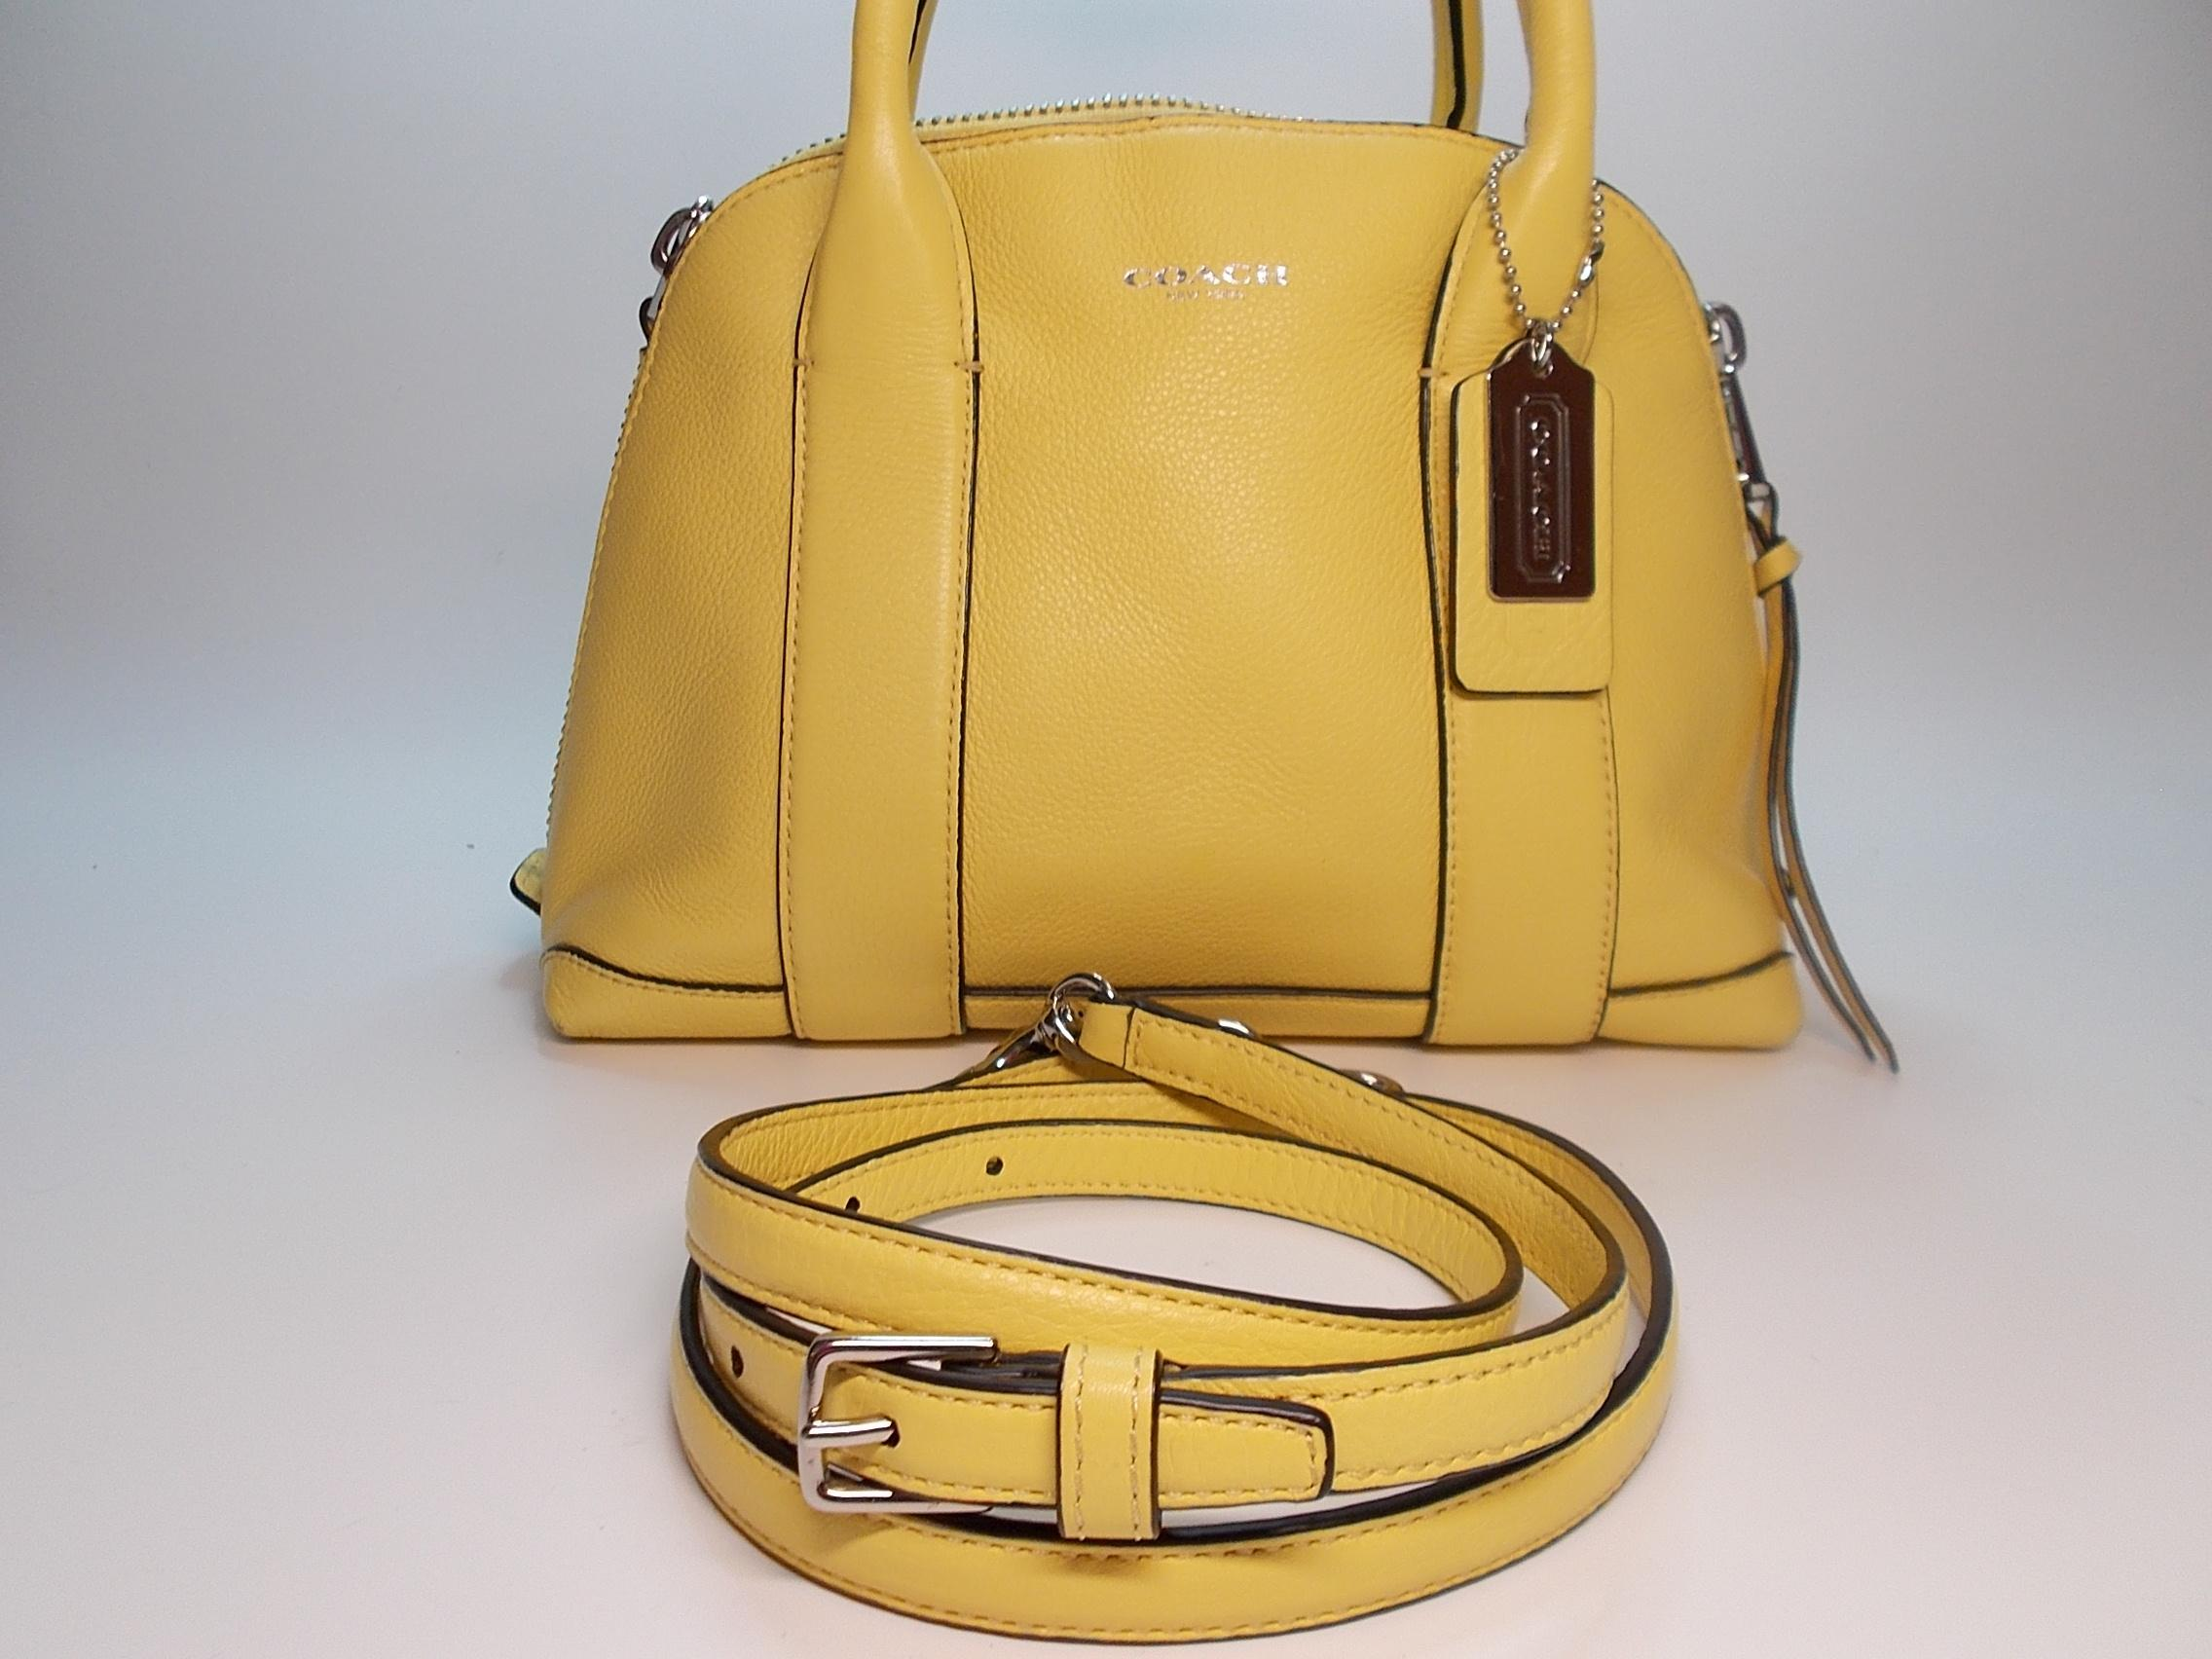 c1621995363d ... norway coach bleecker mini preston pale yellow leather cross body bag  tradesy 509f6 b3947 ...